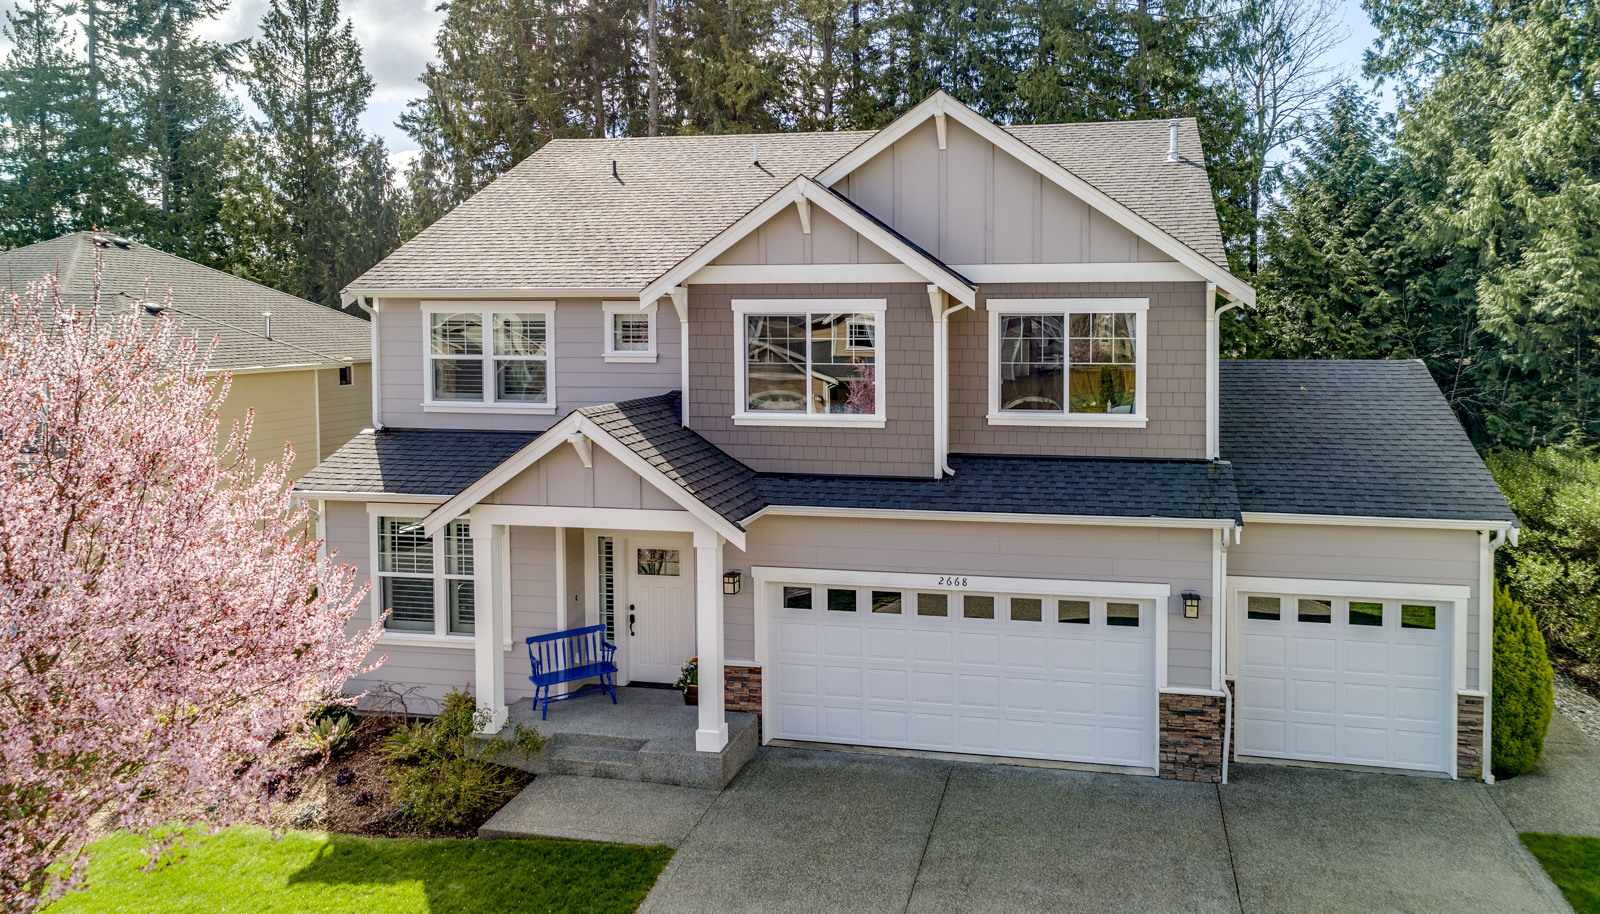 Impeccably maintained, mint condition home within a mile or two of schools and downtown Poulsbo!